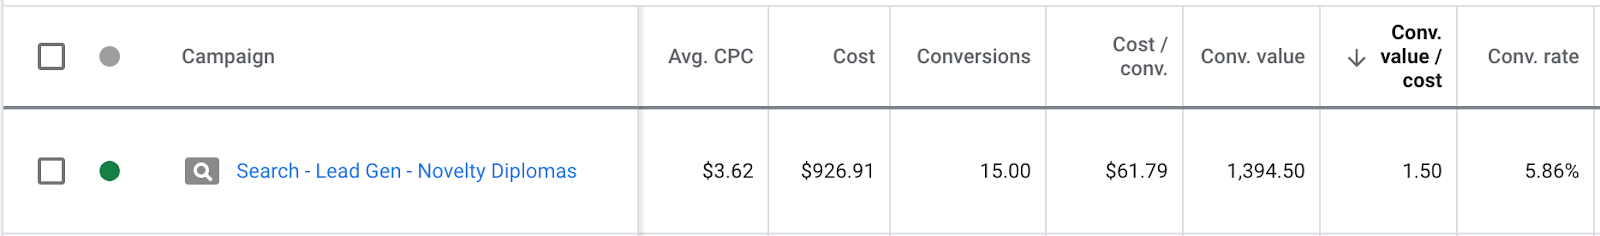 Additional information about the client's conversion rate after one month of using HOTH PPC.